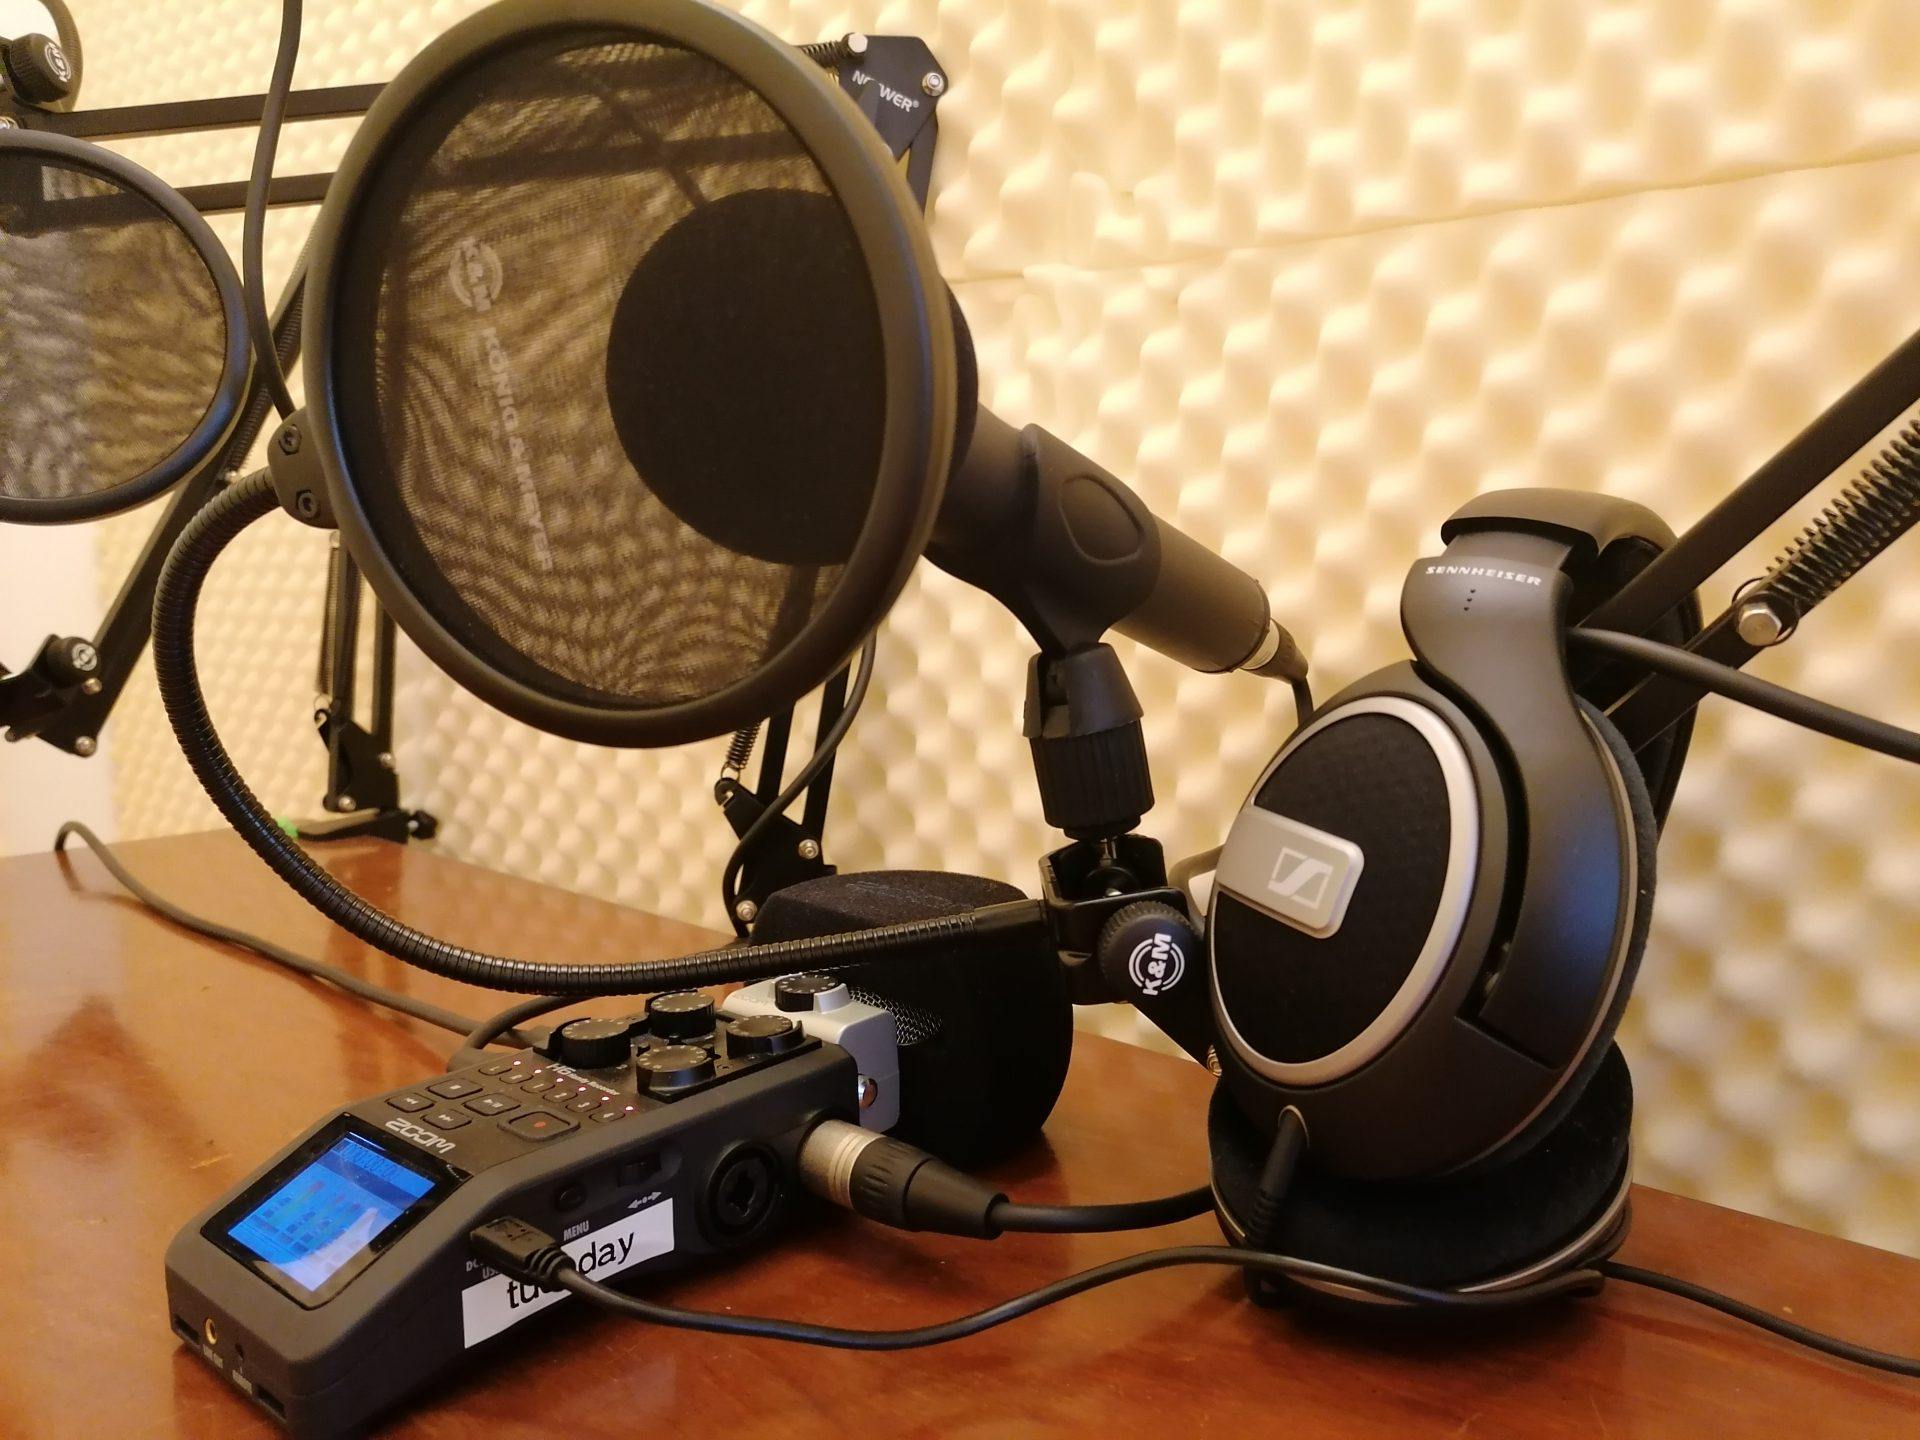 Podcasting Equipment at tuesday coworking